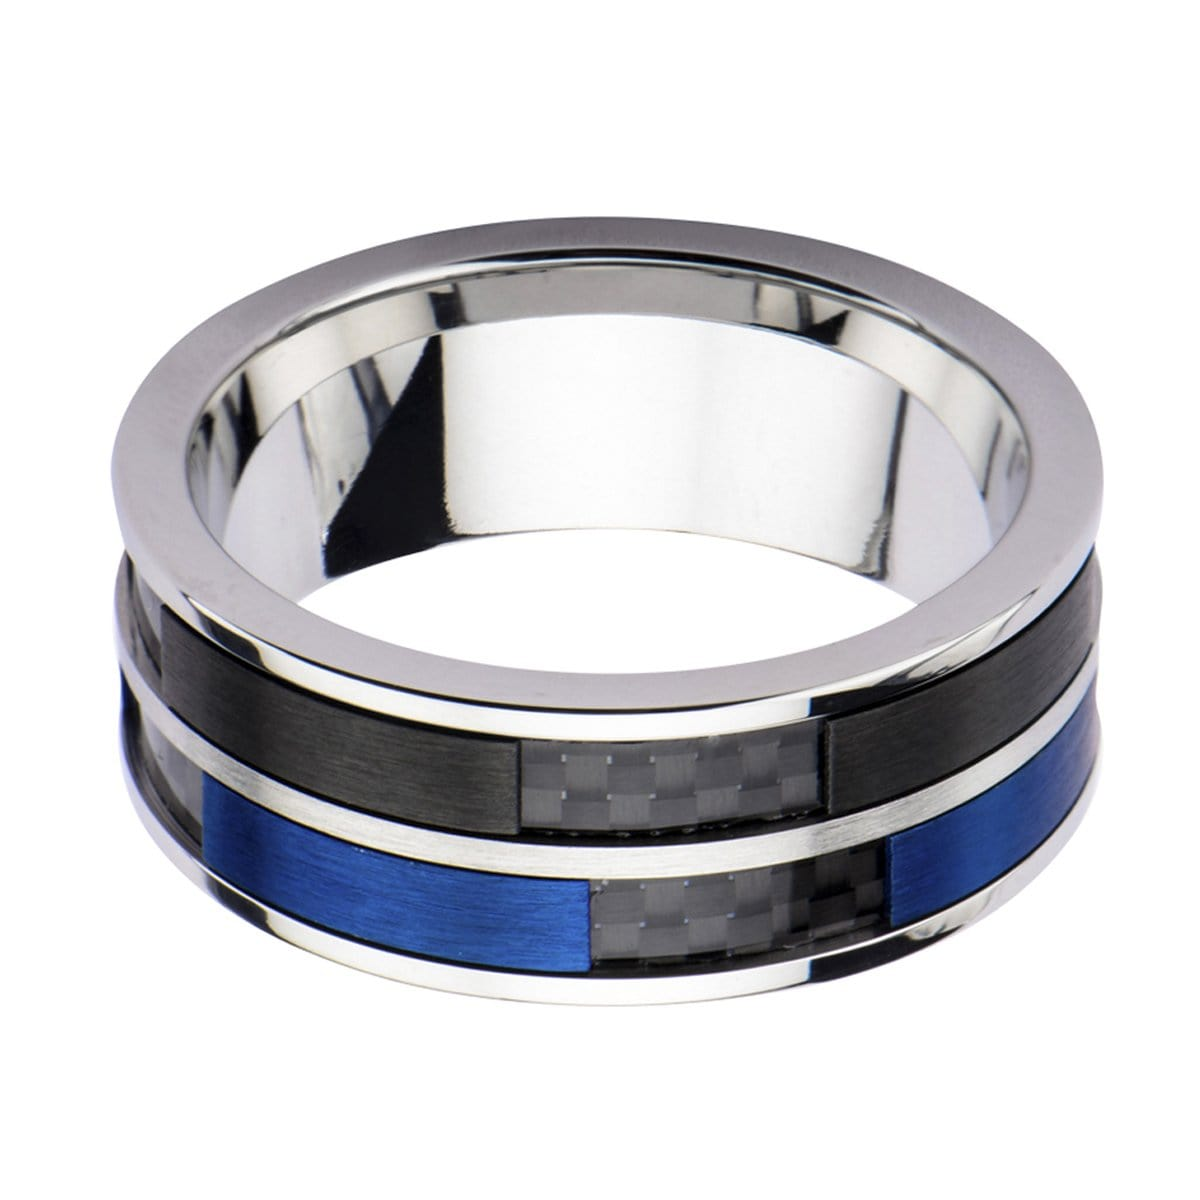 Blue, Black & Silver Stainless Steel Carbon Fiber Double Band Ring - Inox Jewelry India